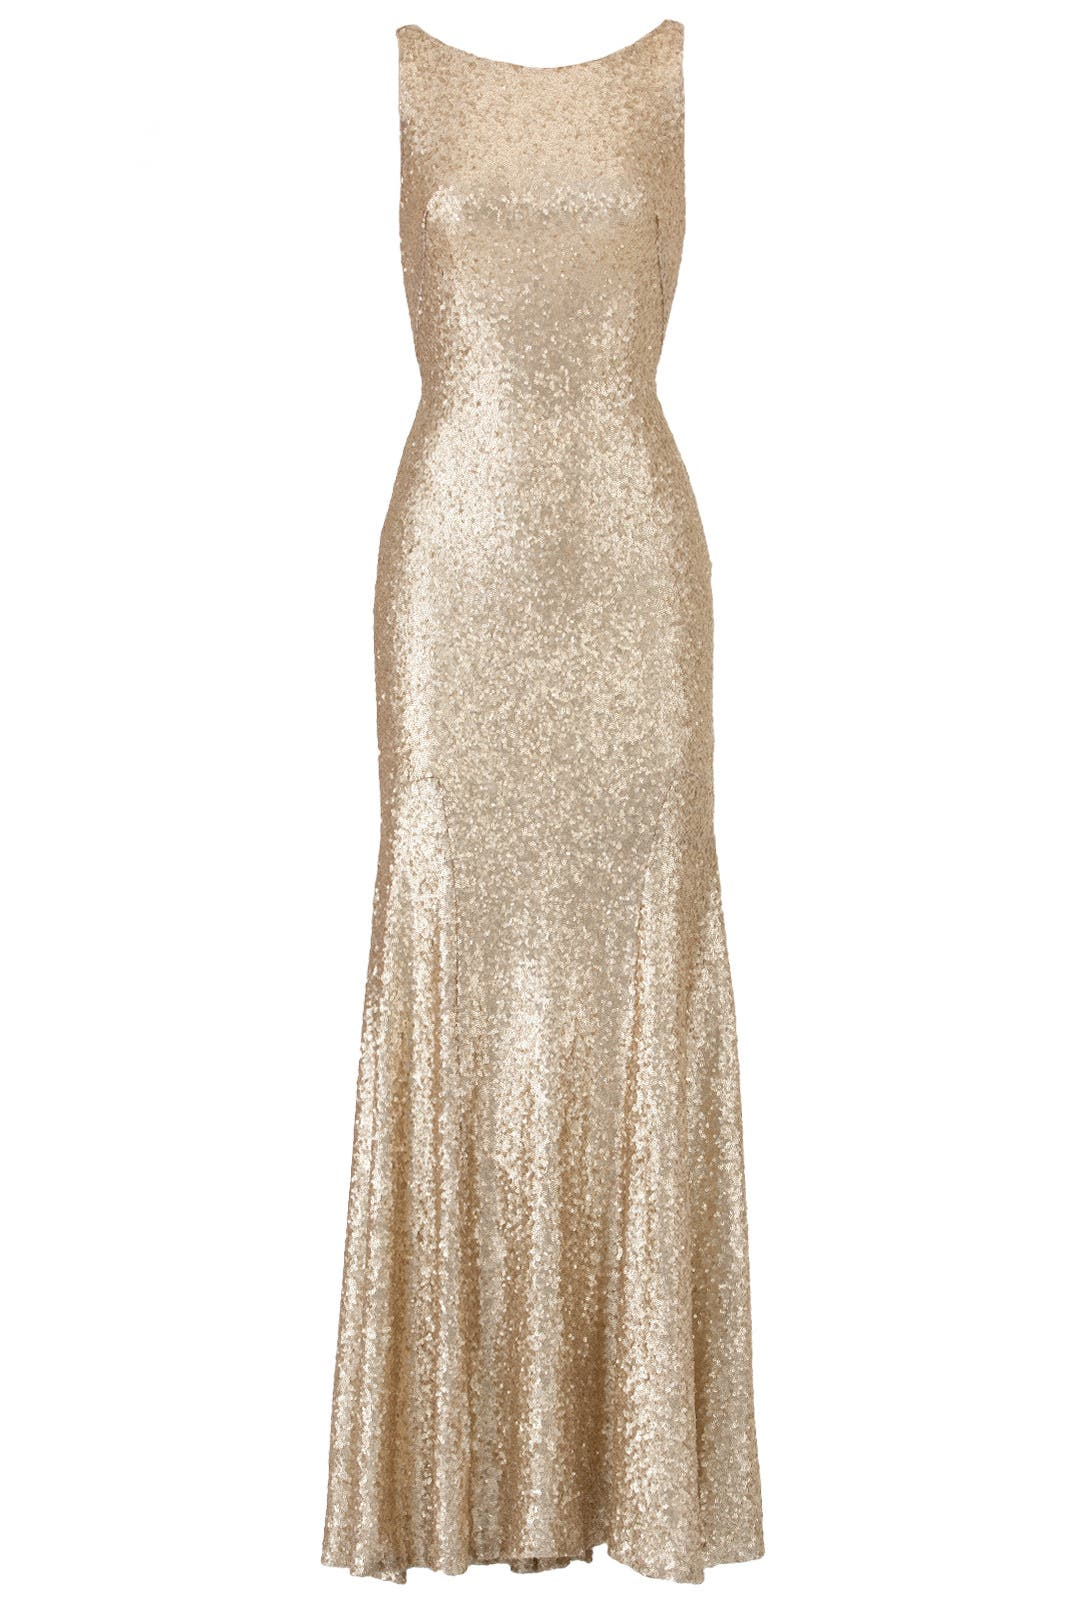 Gold Gemma Gown by Theia for $50 - $70 | Rent the Runway